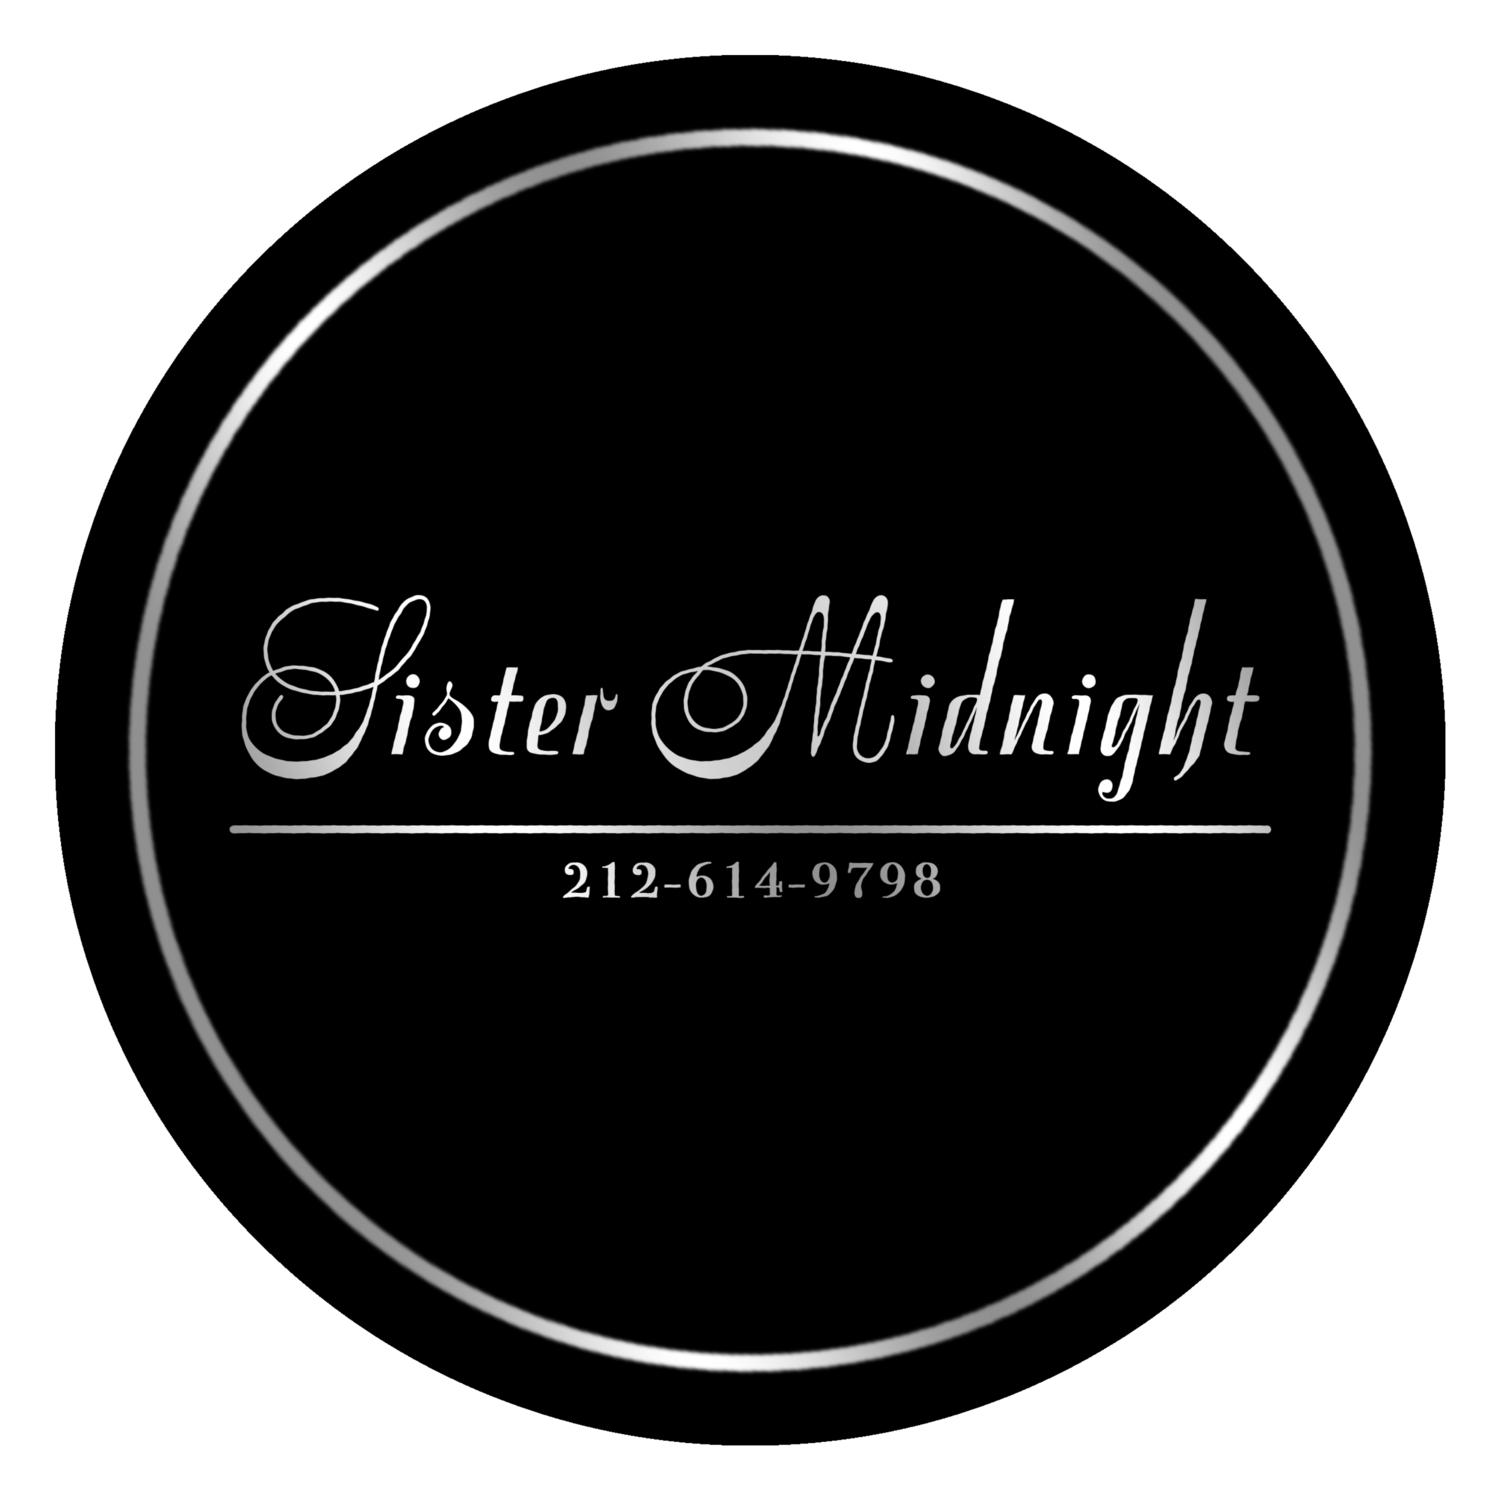 Sister Midnight